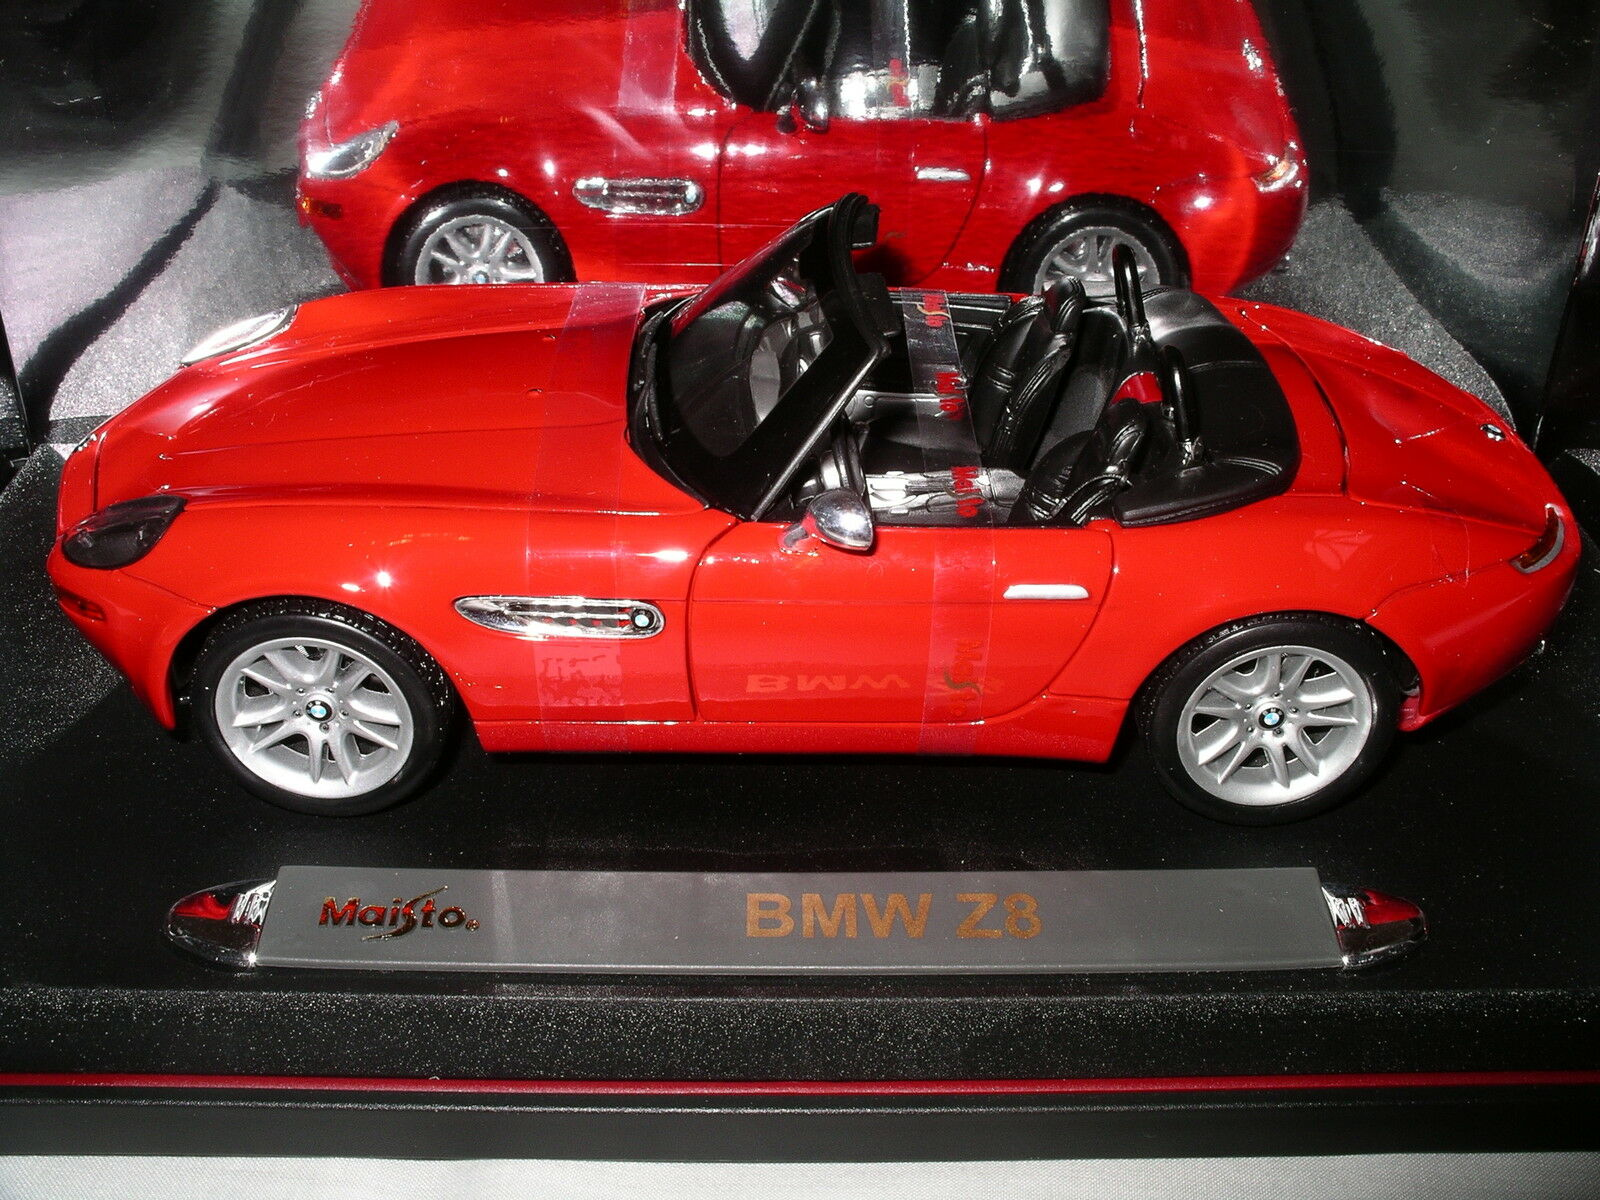 BMW Z8 Red Box Original Straps Premiere Edition by Maisto Bright and Clean 1 18